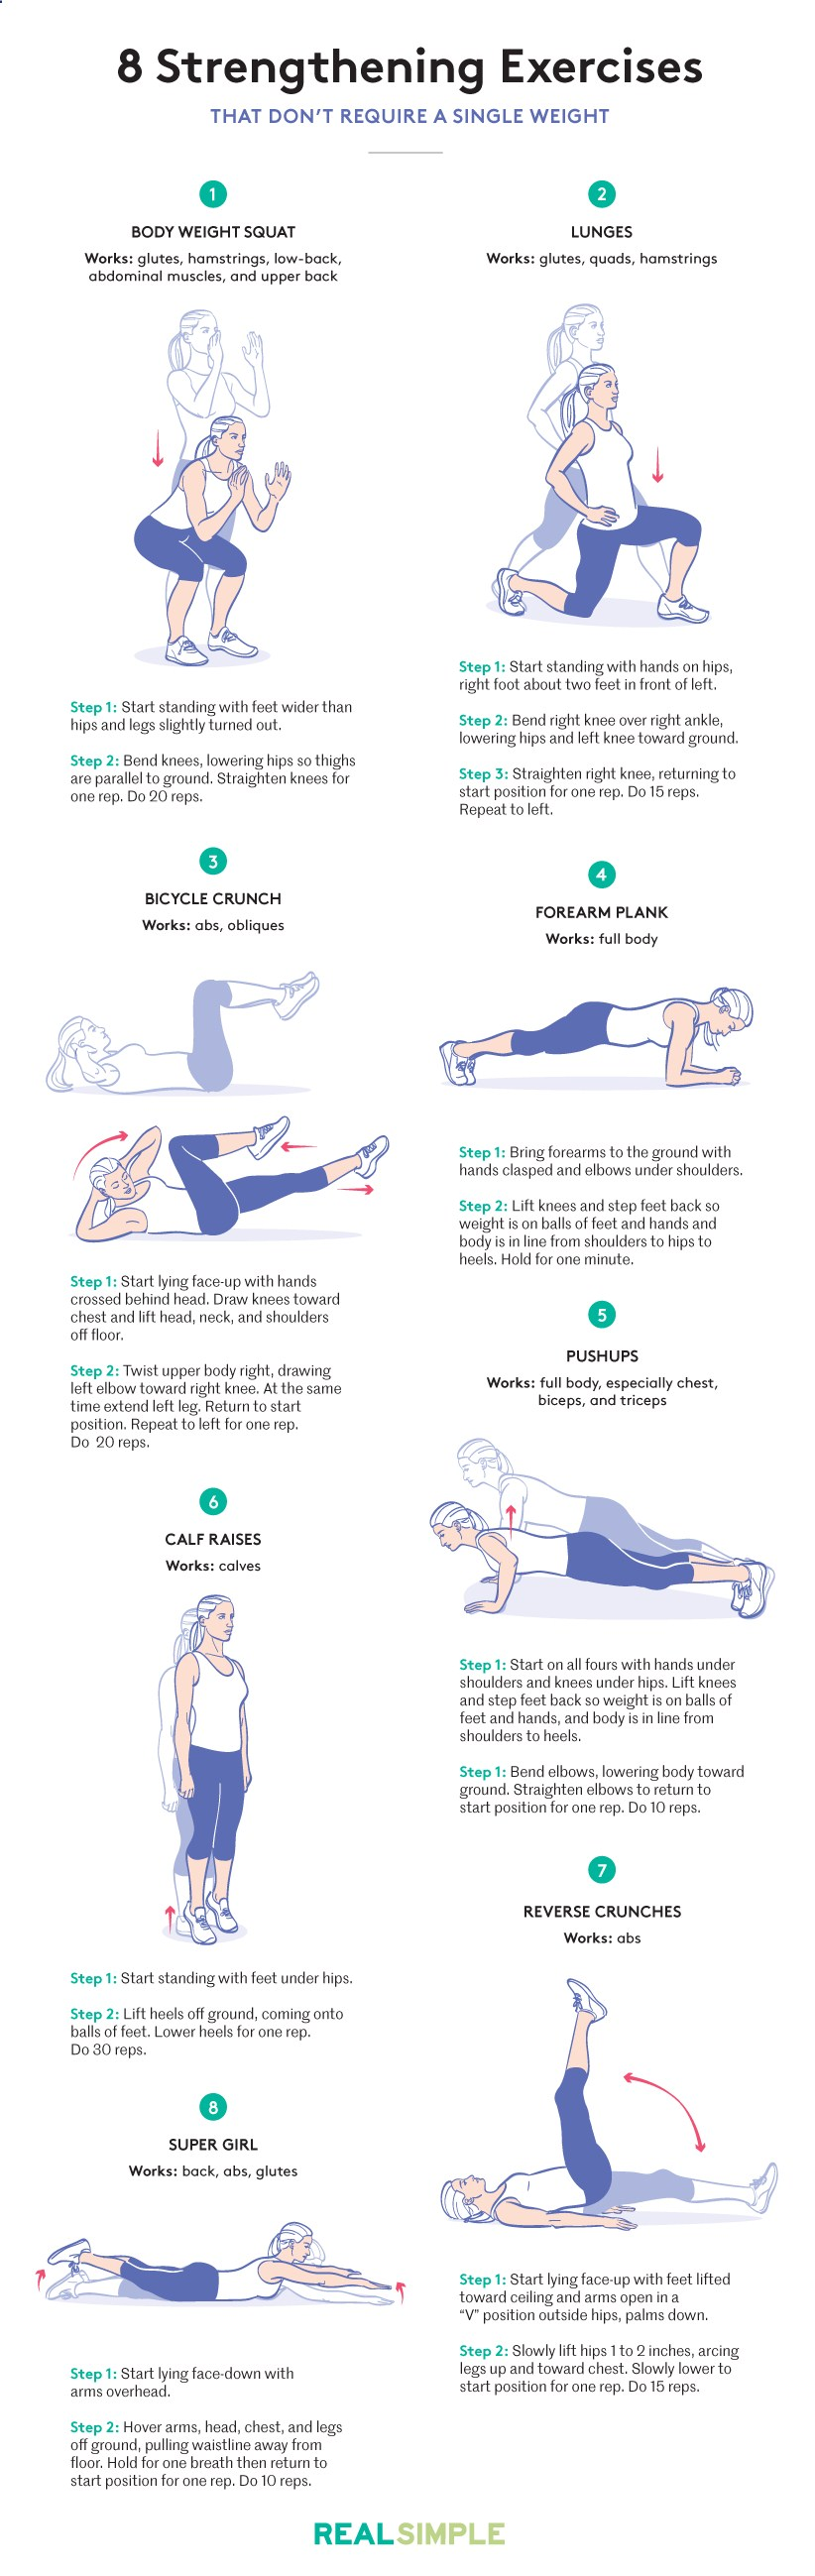 Do this program, which was designed by Olson, four times a week for six weeks. In that time youll get stronger overall, which translates to a tighter physique, says Olson. Because the moves can be done anywhere, you can fit in this workout on the fly, even if you're stuck on a conference call or in a far-flung hotel.